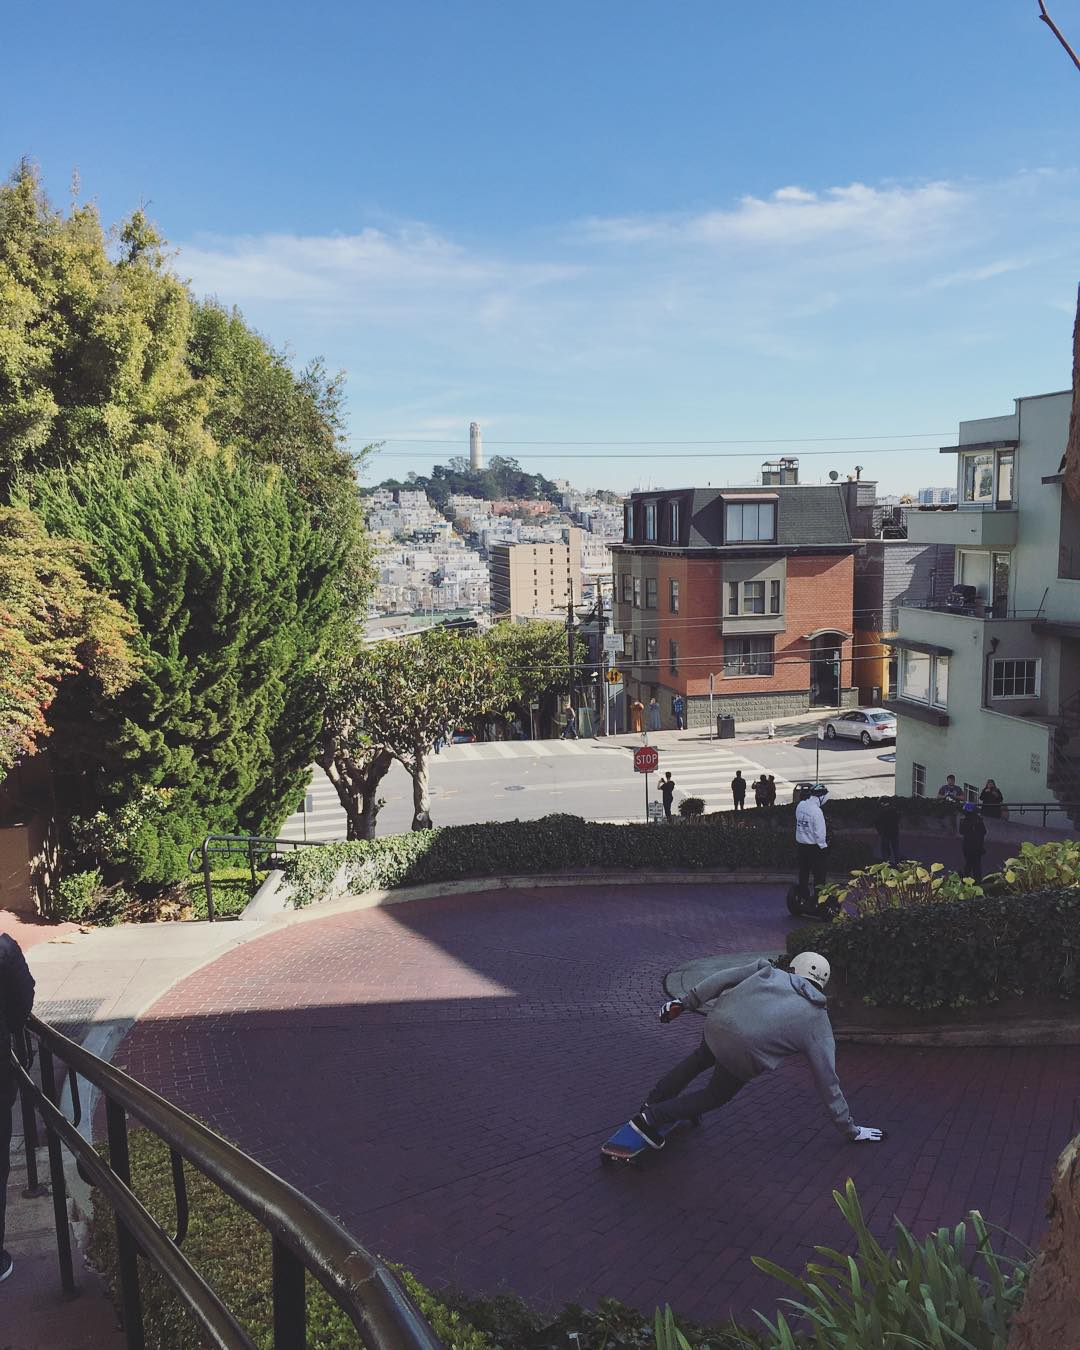 our dude @jordanriachi is in town and skating all the classics. #lombardstreet photo @liam_lbdr_